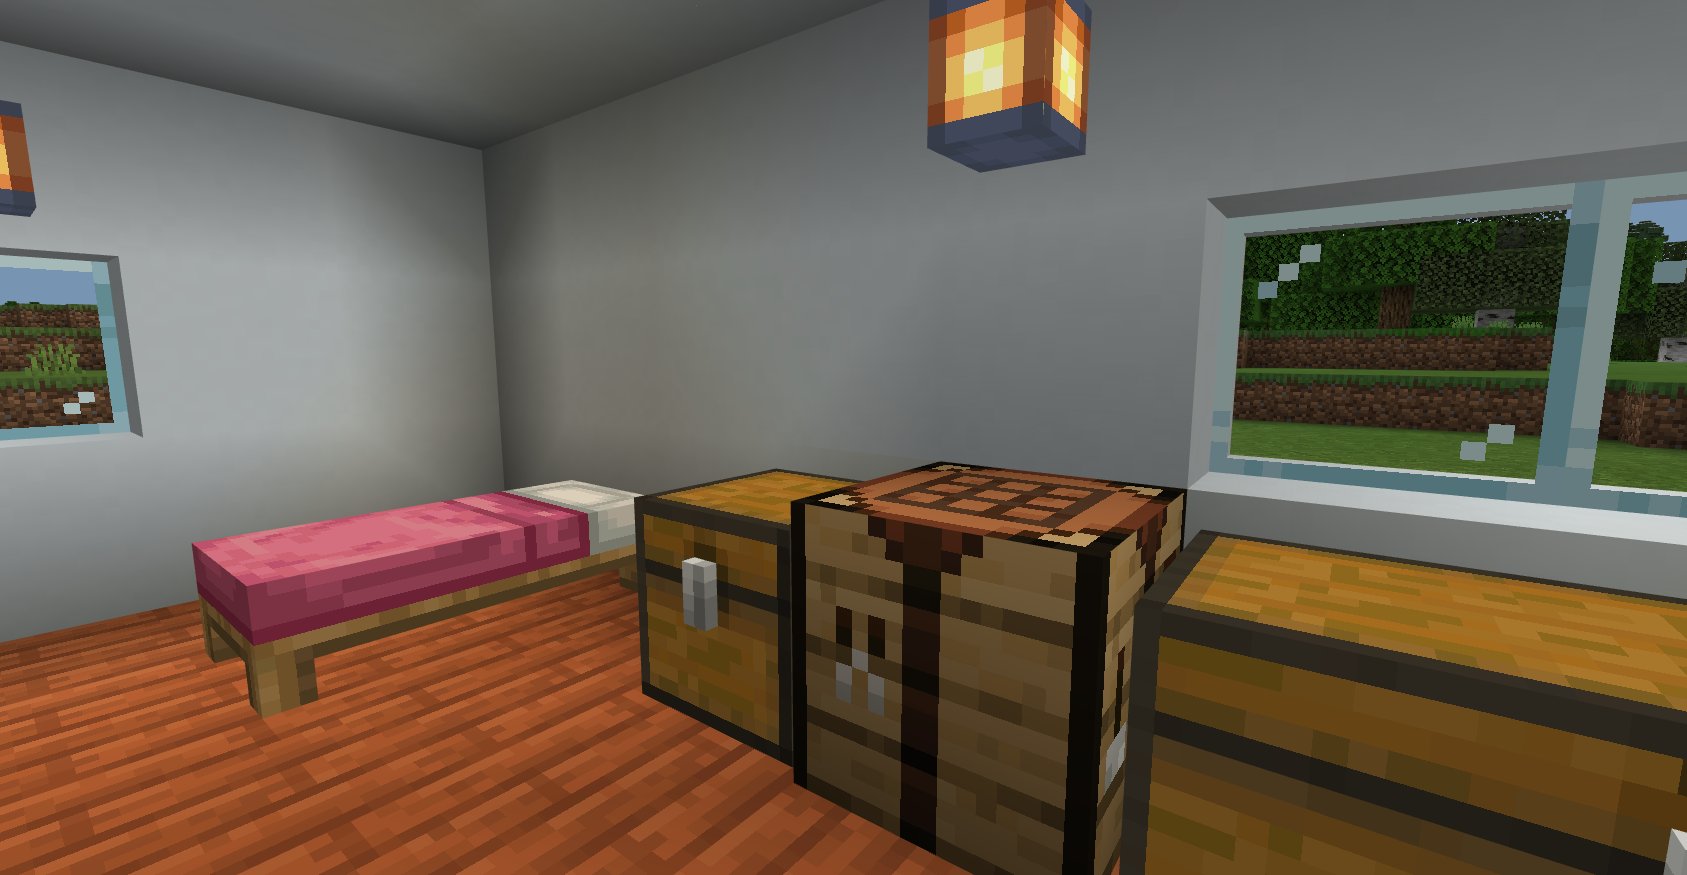 The inside of a Minecraft house, showing some Chests, a Crafting Table, and a Bed